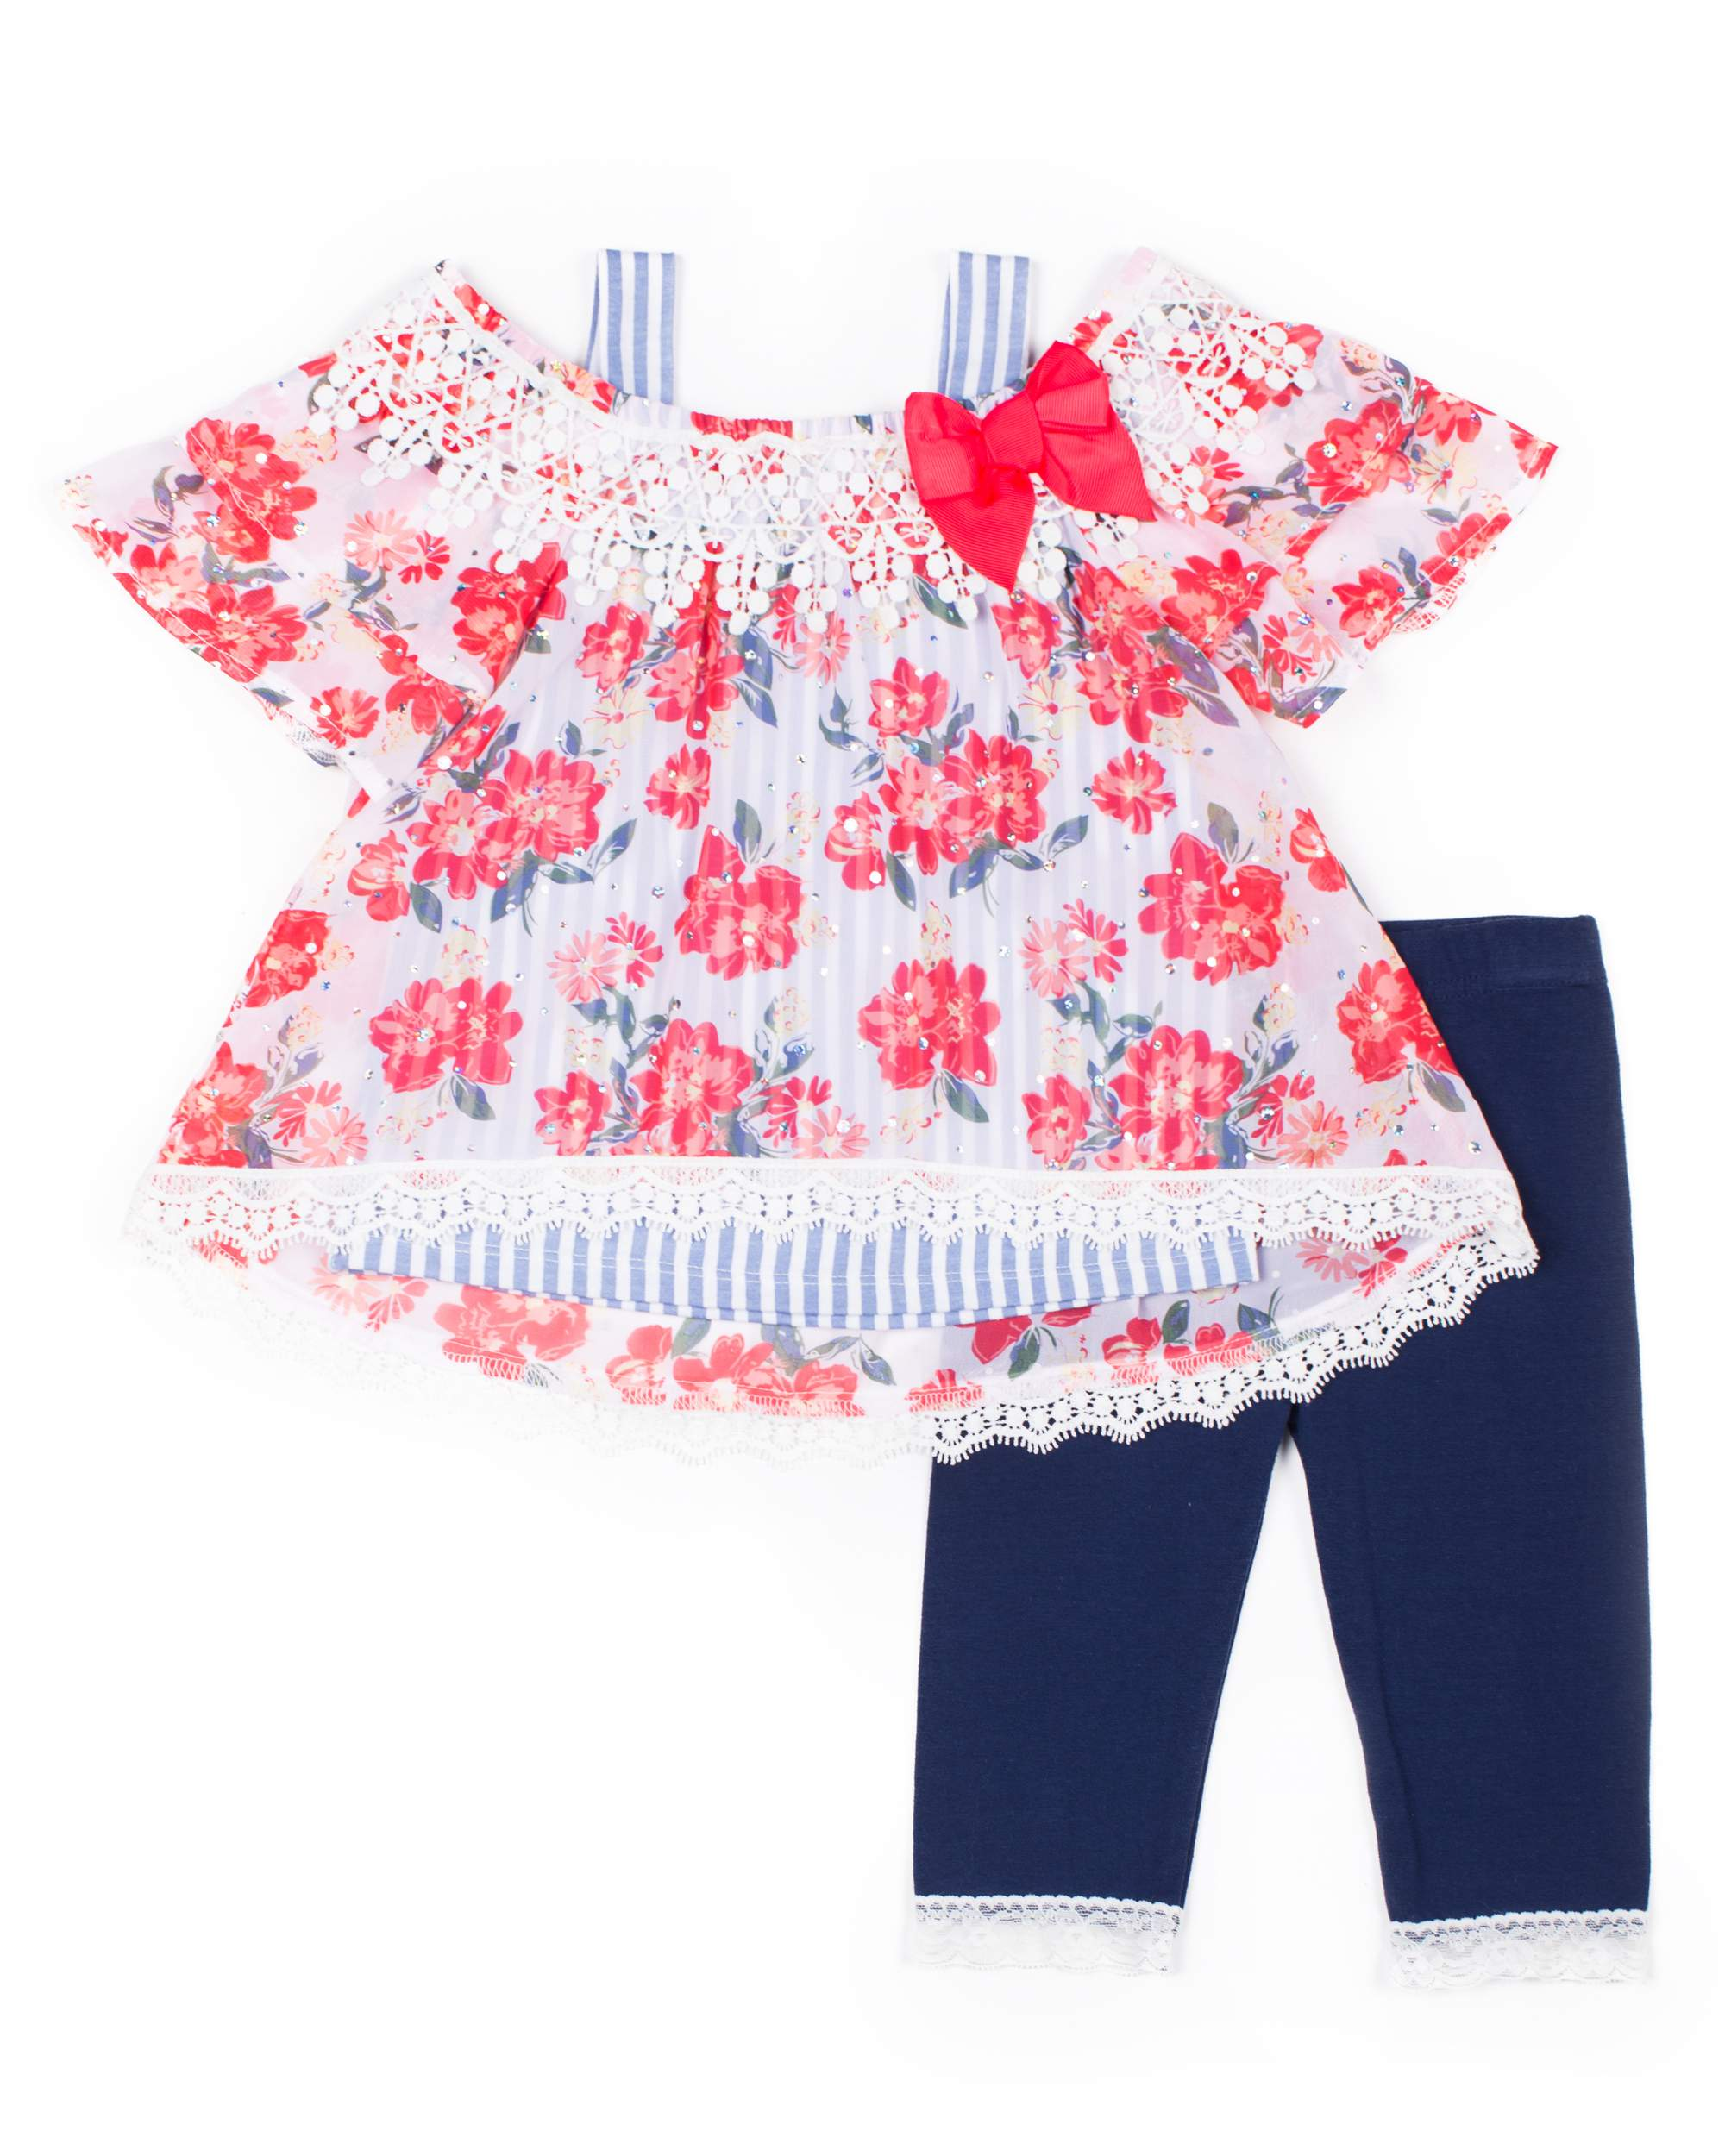 Floral Chiffon 2Fer Top and Capri Legging, 2-Piece Outfit Set (Little Girls)